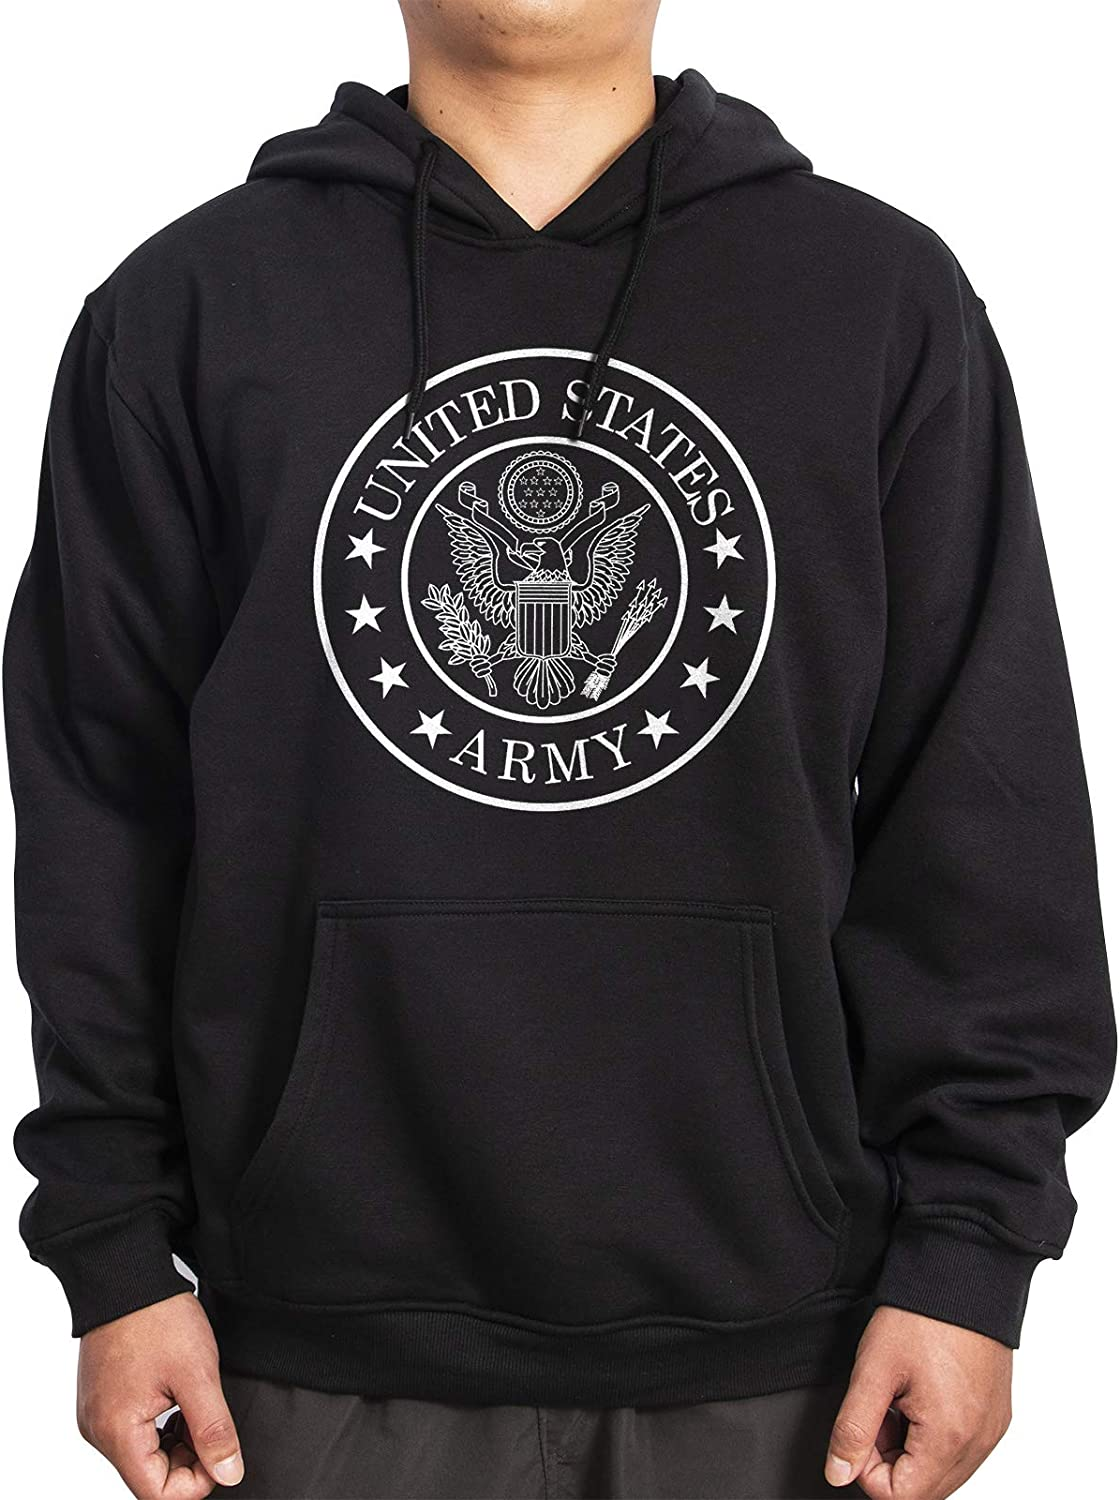 WINTERSUNNY US Army Force Cotton Black Thickened Sweatshirt Pullover Hoodies for Men